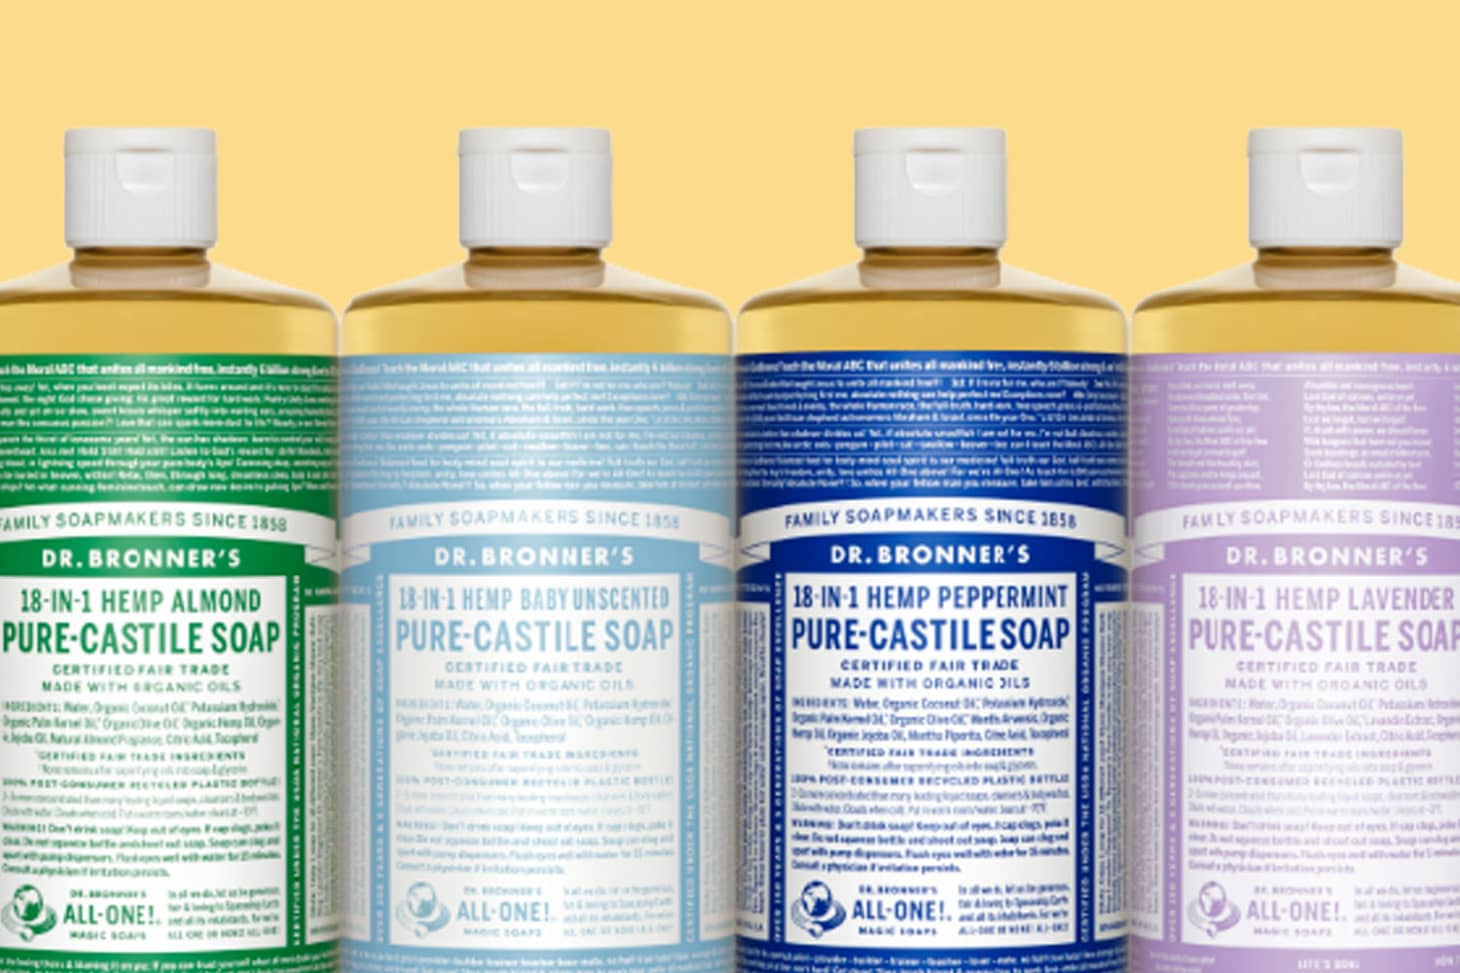 Castile Soap Warnings: 6 Mistakes to Avoid | Apartment Therapy